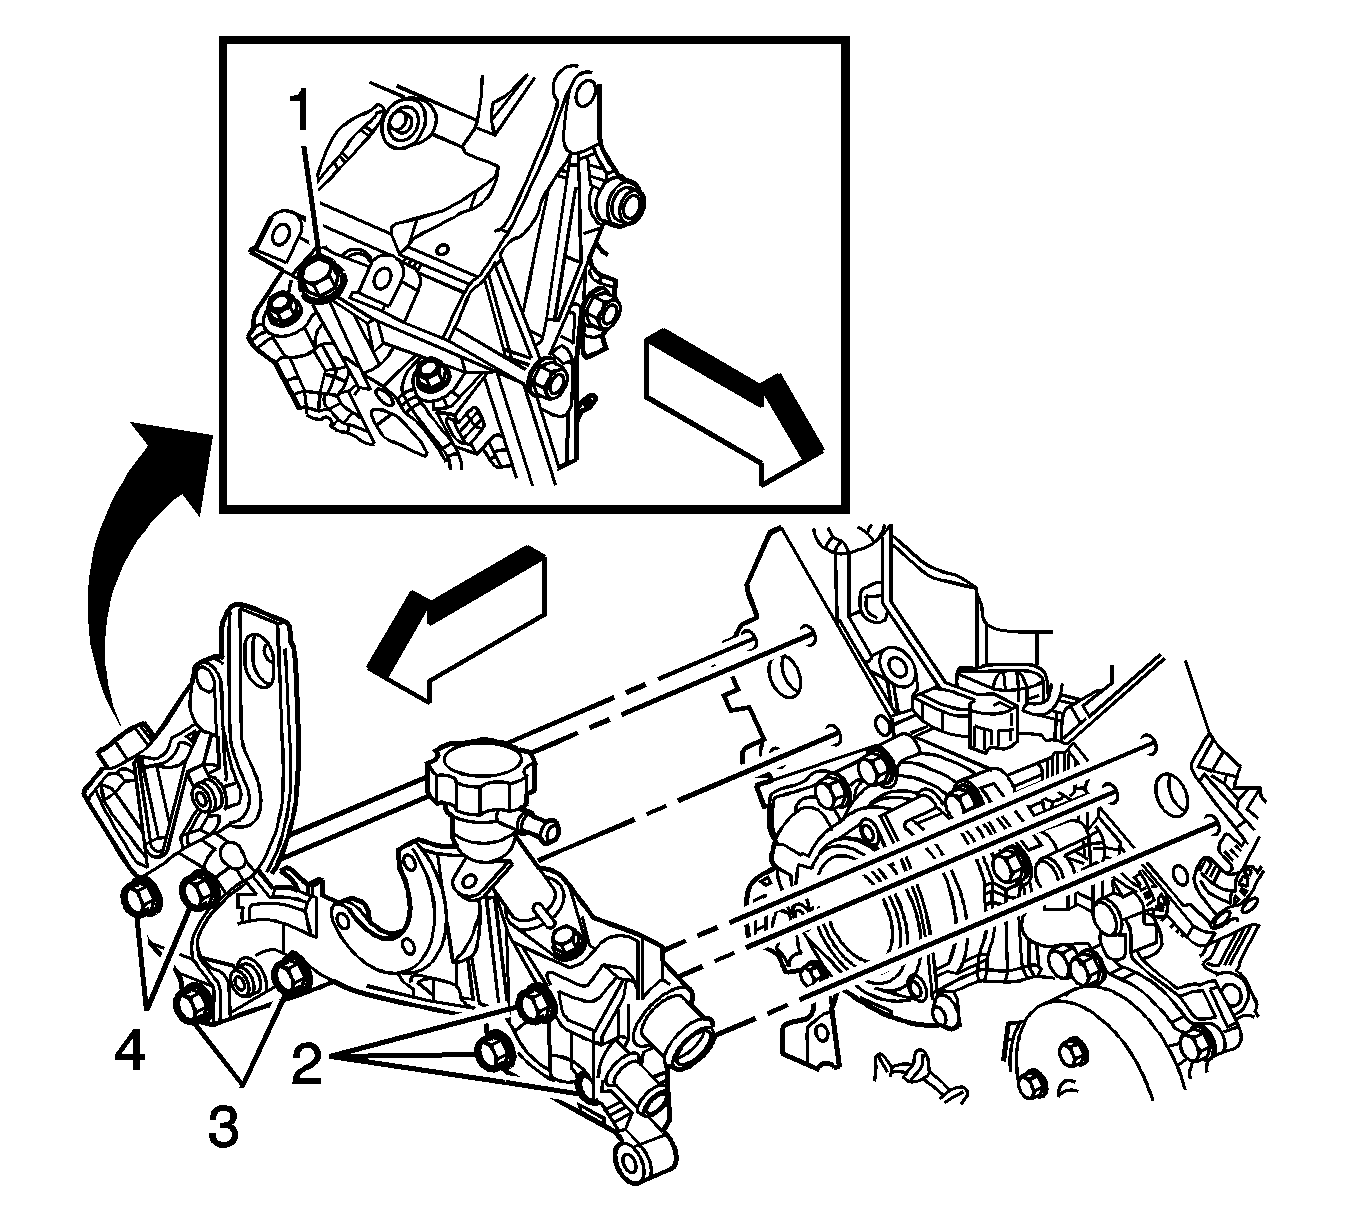 [WRG-2785] Pontiac G6 2 4 Engine Diagram Water Pump